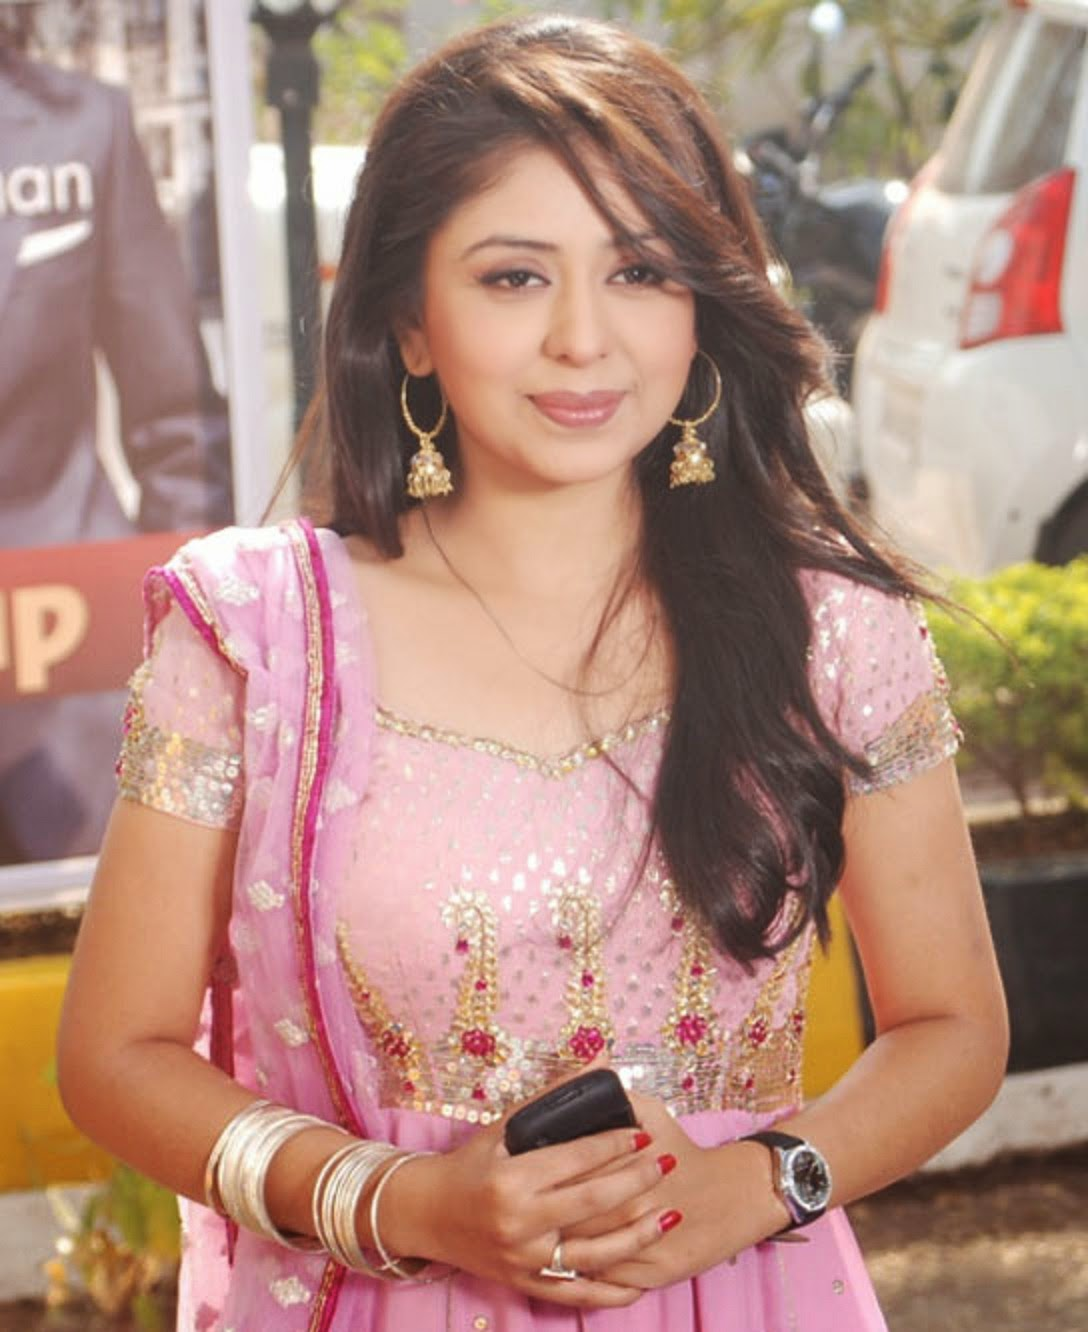 Beautiful Neha Sargam Images HD Wallpaper - all 4u wallpaperNeha Sargam Hot